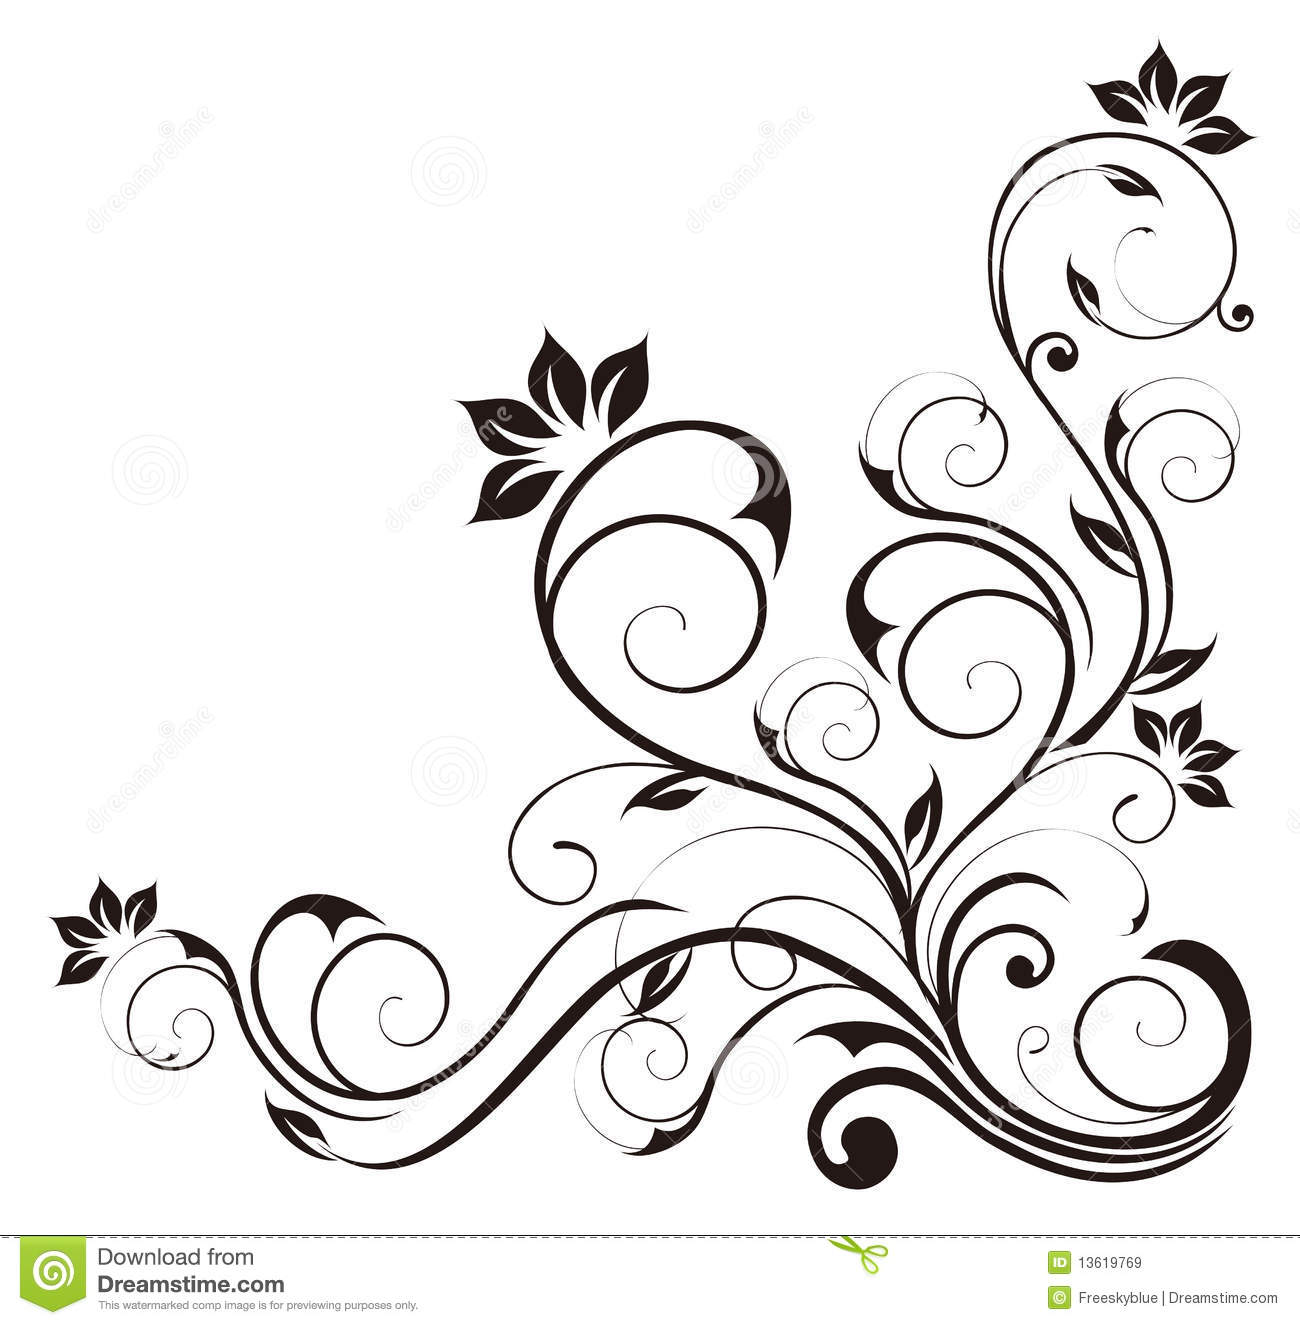 Black Flower Silhouette Pattern Royalty Free Stock Images: Black Flower Pattern Royalty Free Stock Images